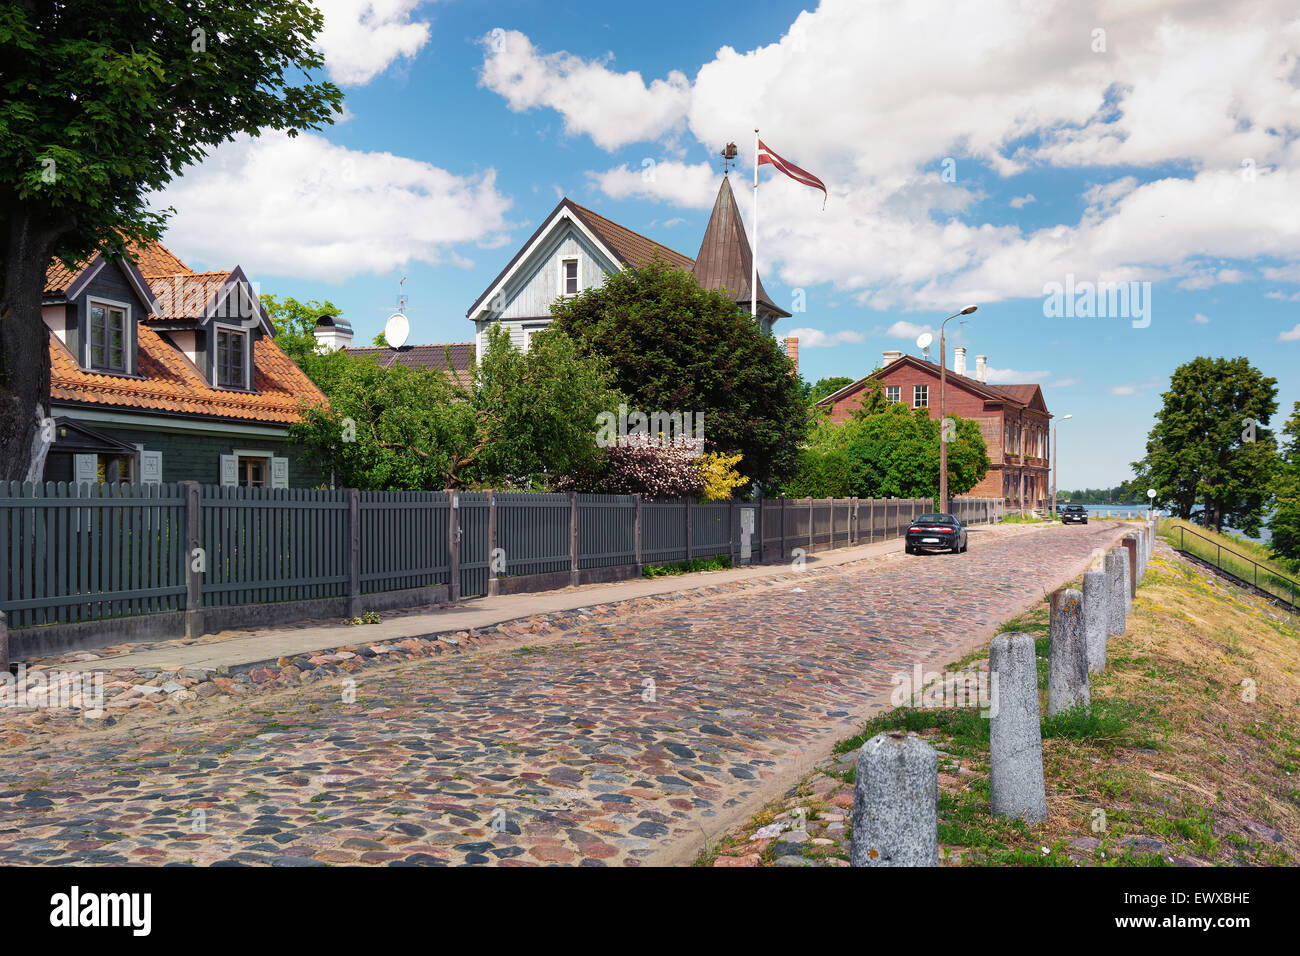 Latvia, Riga, Kipsala. June 2015. Old houses with the national flag in the historic city of Riga on the left bank - Stock Image